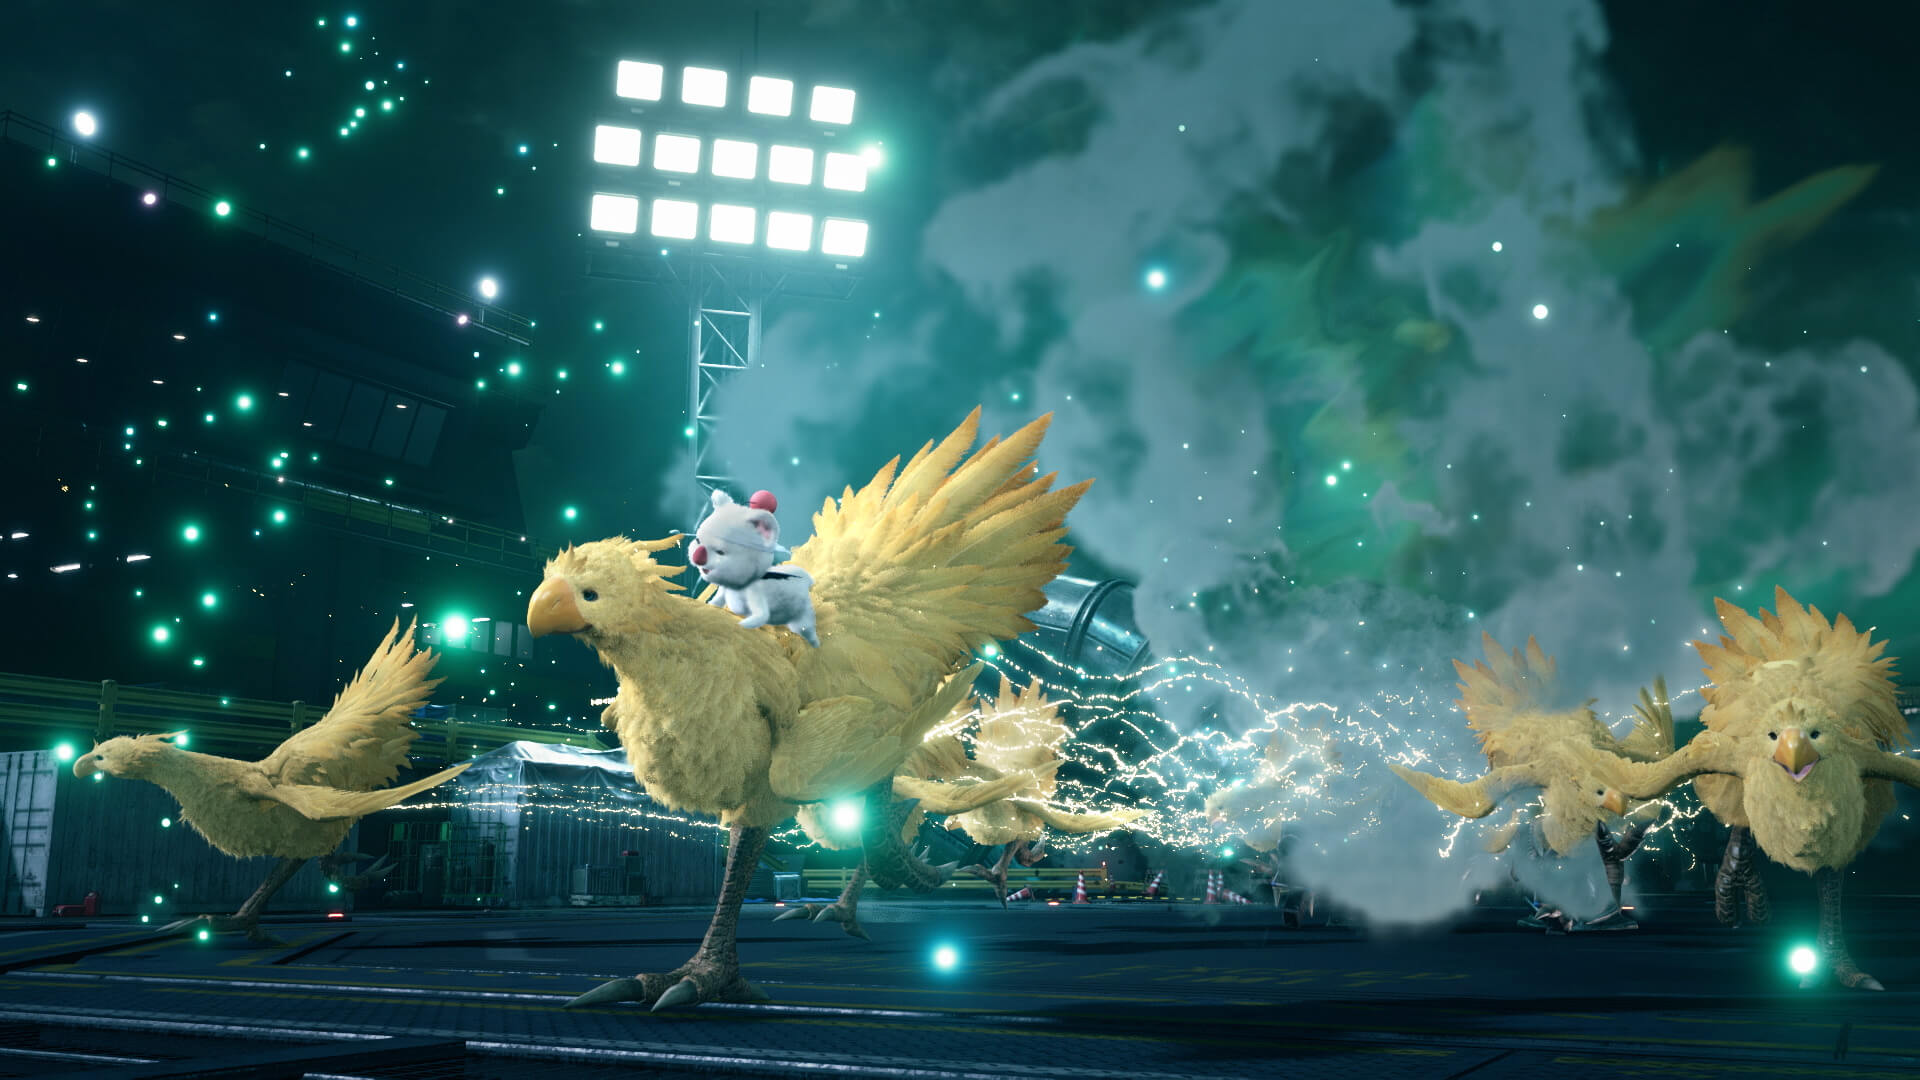 How to get Moogle Medals in the Final Fantasy 7 Remake